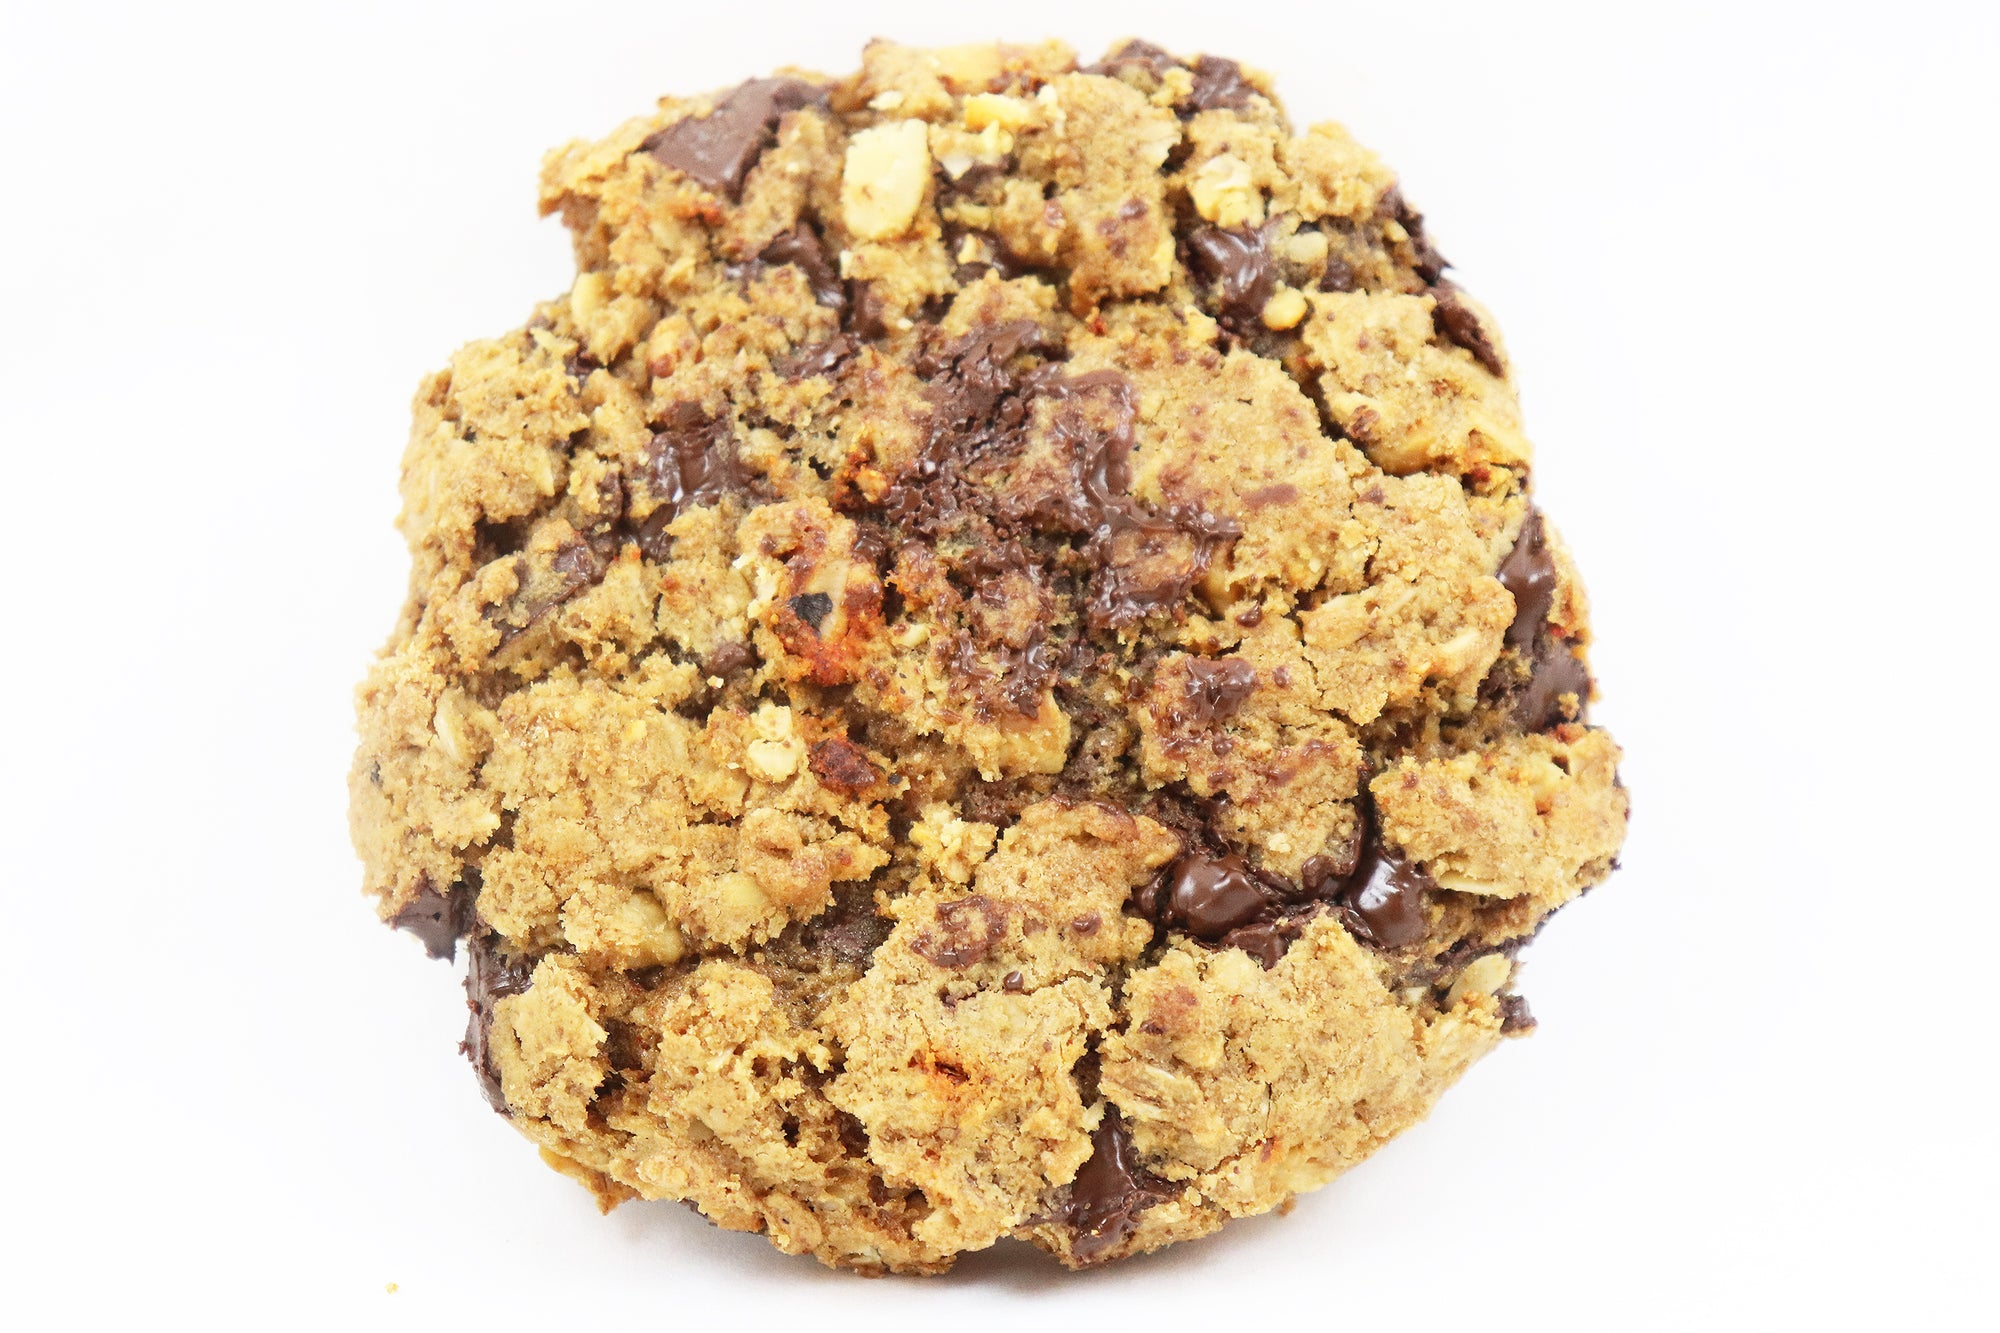 Chocolate Chili Cookie